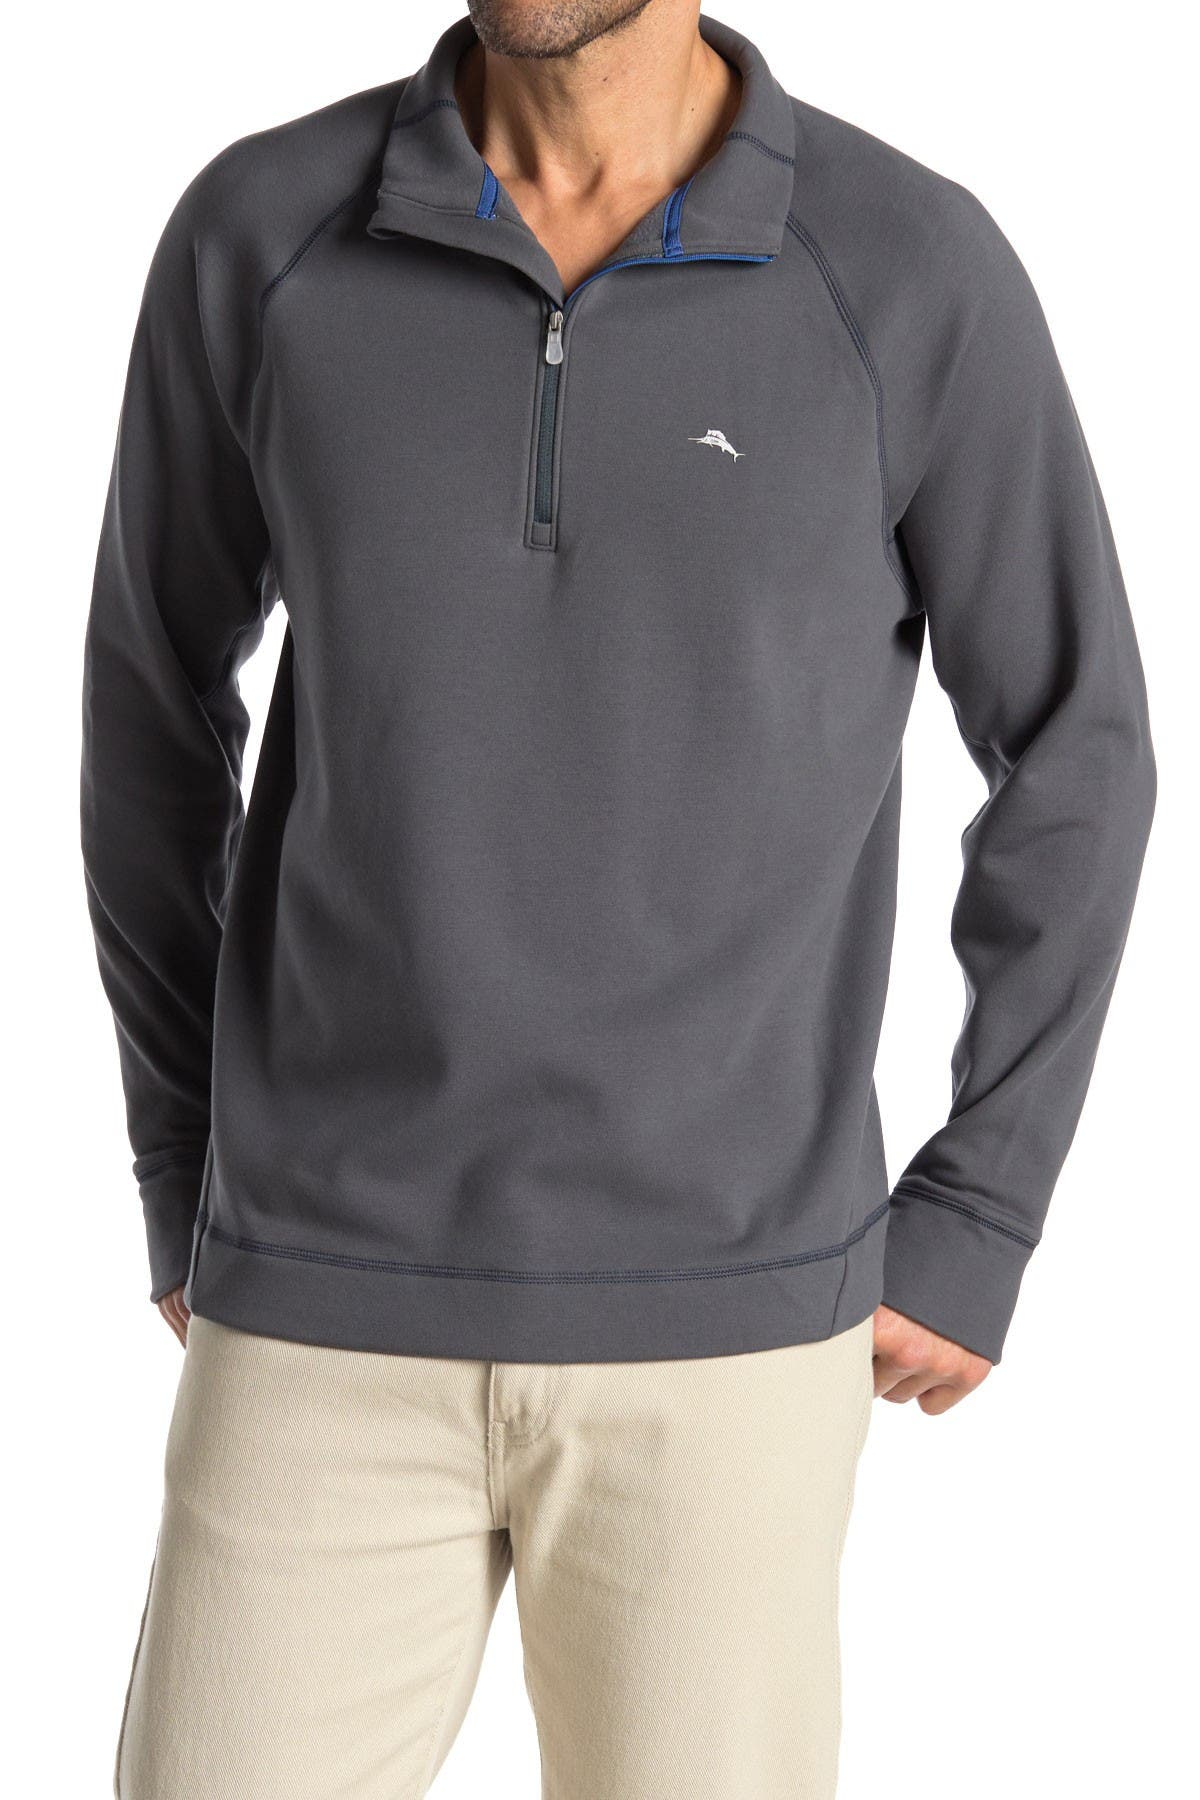 Image of Tommy Bahama Palm Harbor Half Zip Fleece Pullover